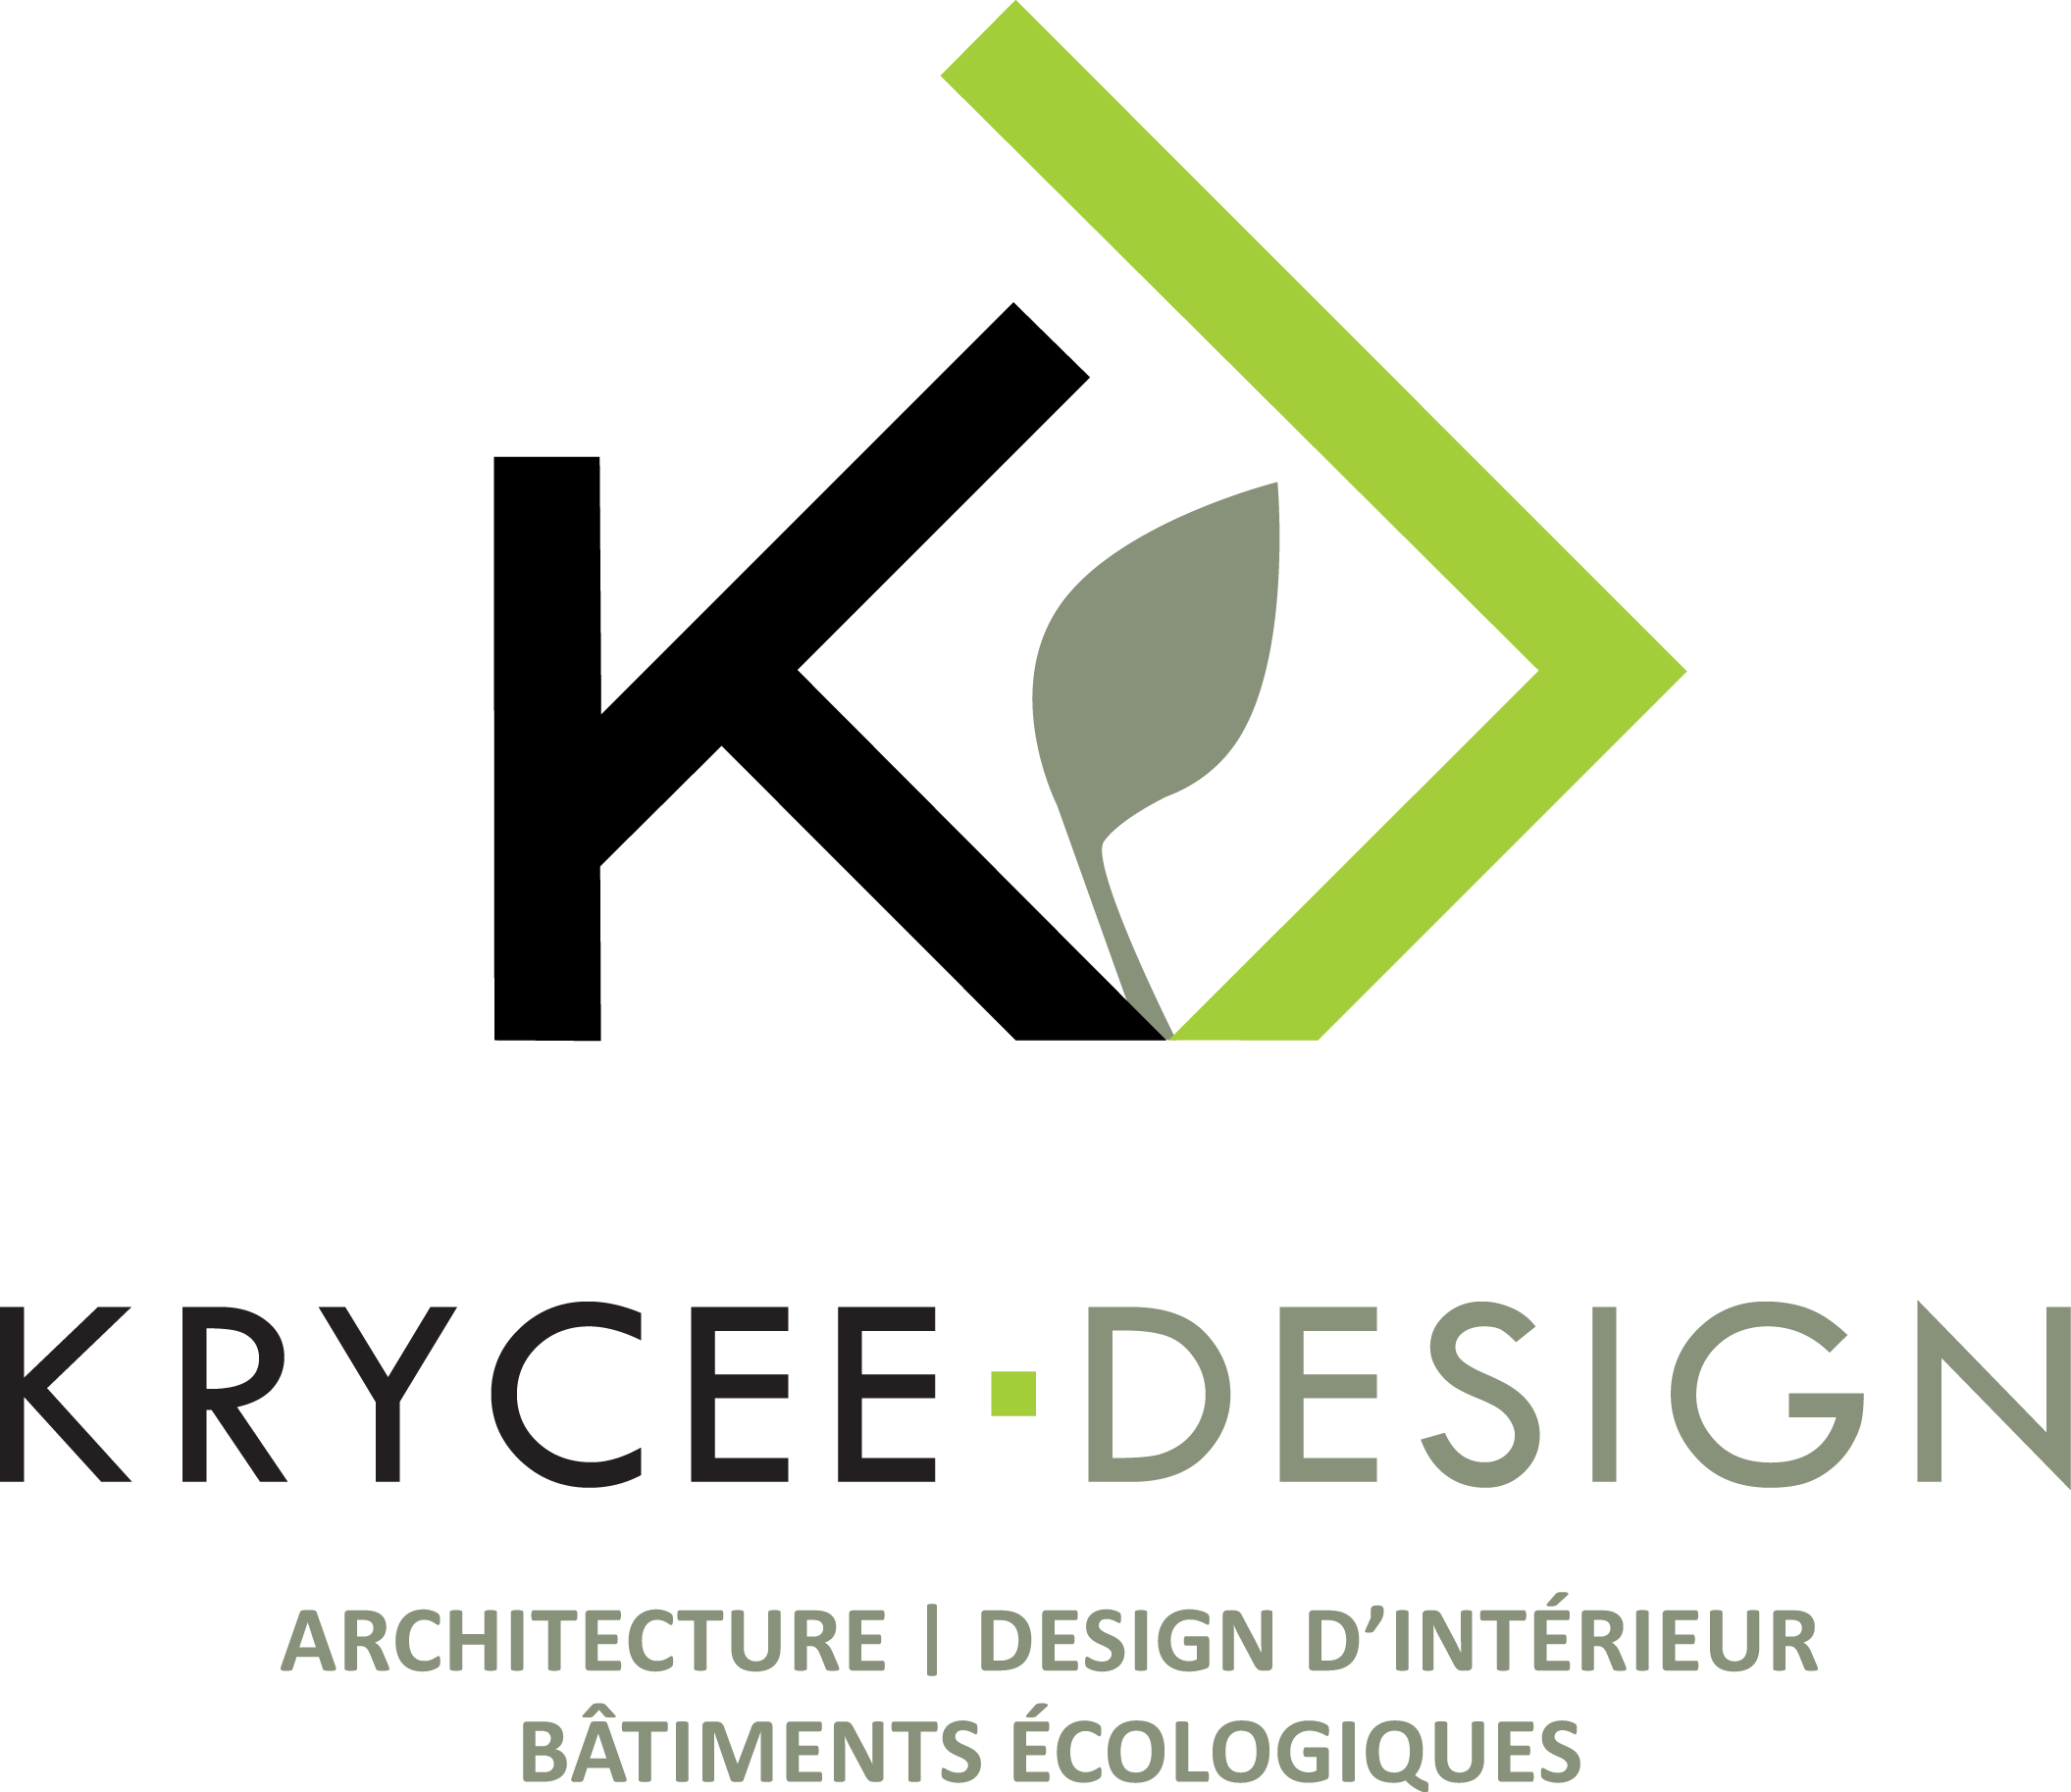 KryceeDesign